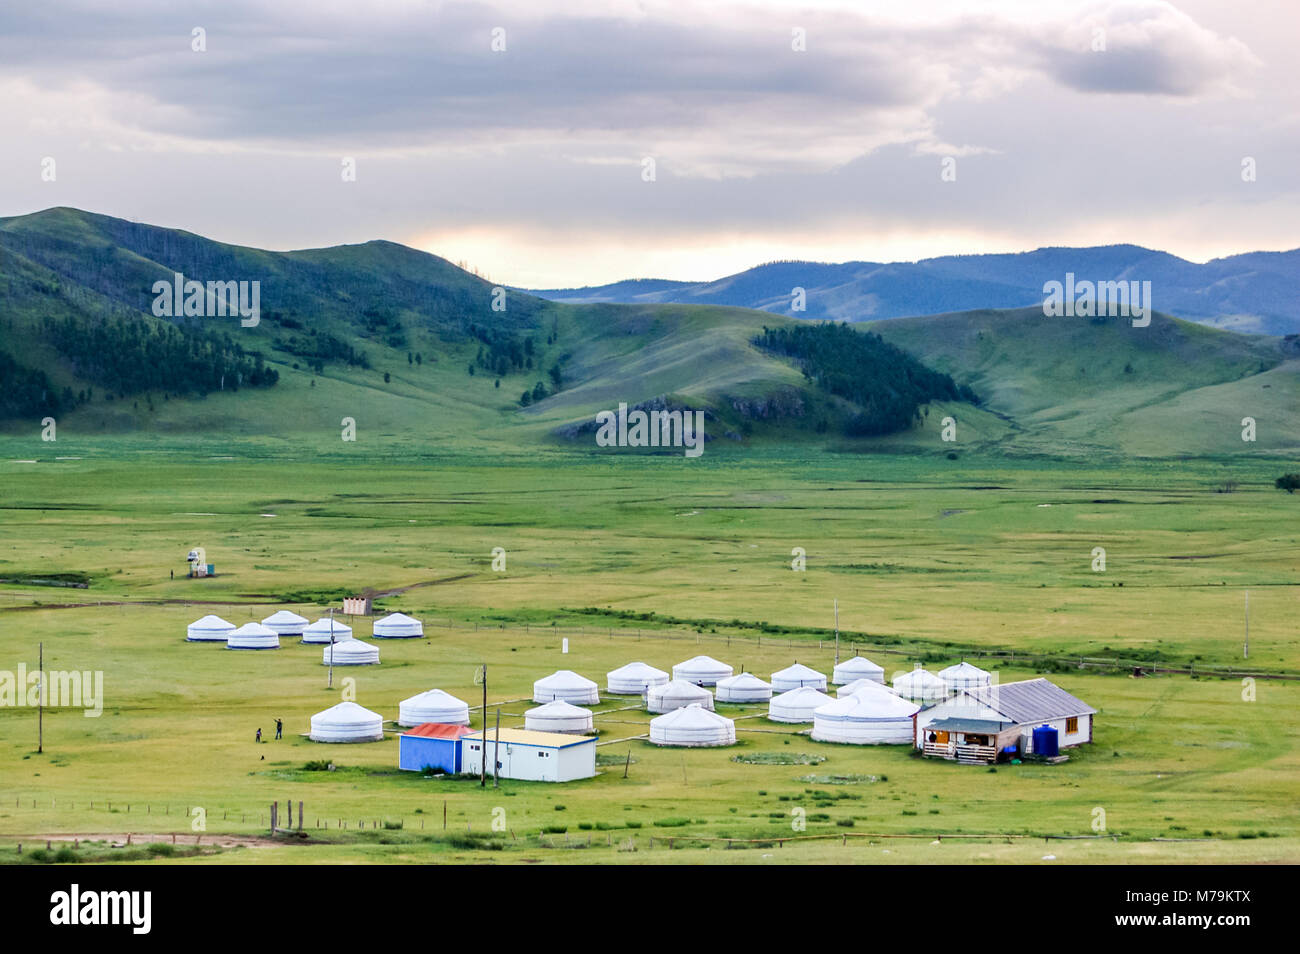 Mongolian yurts called gers on central Mongolian steppe - Stock Image